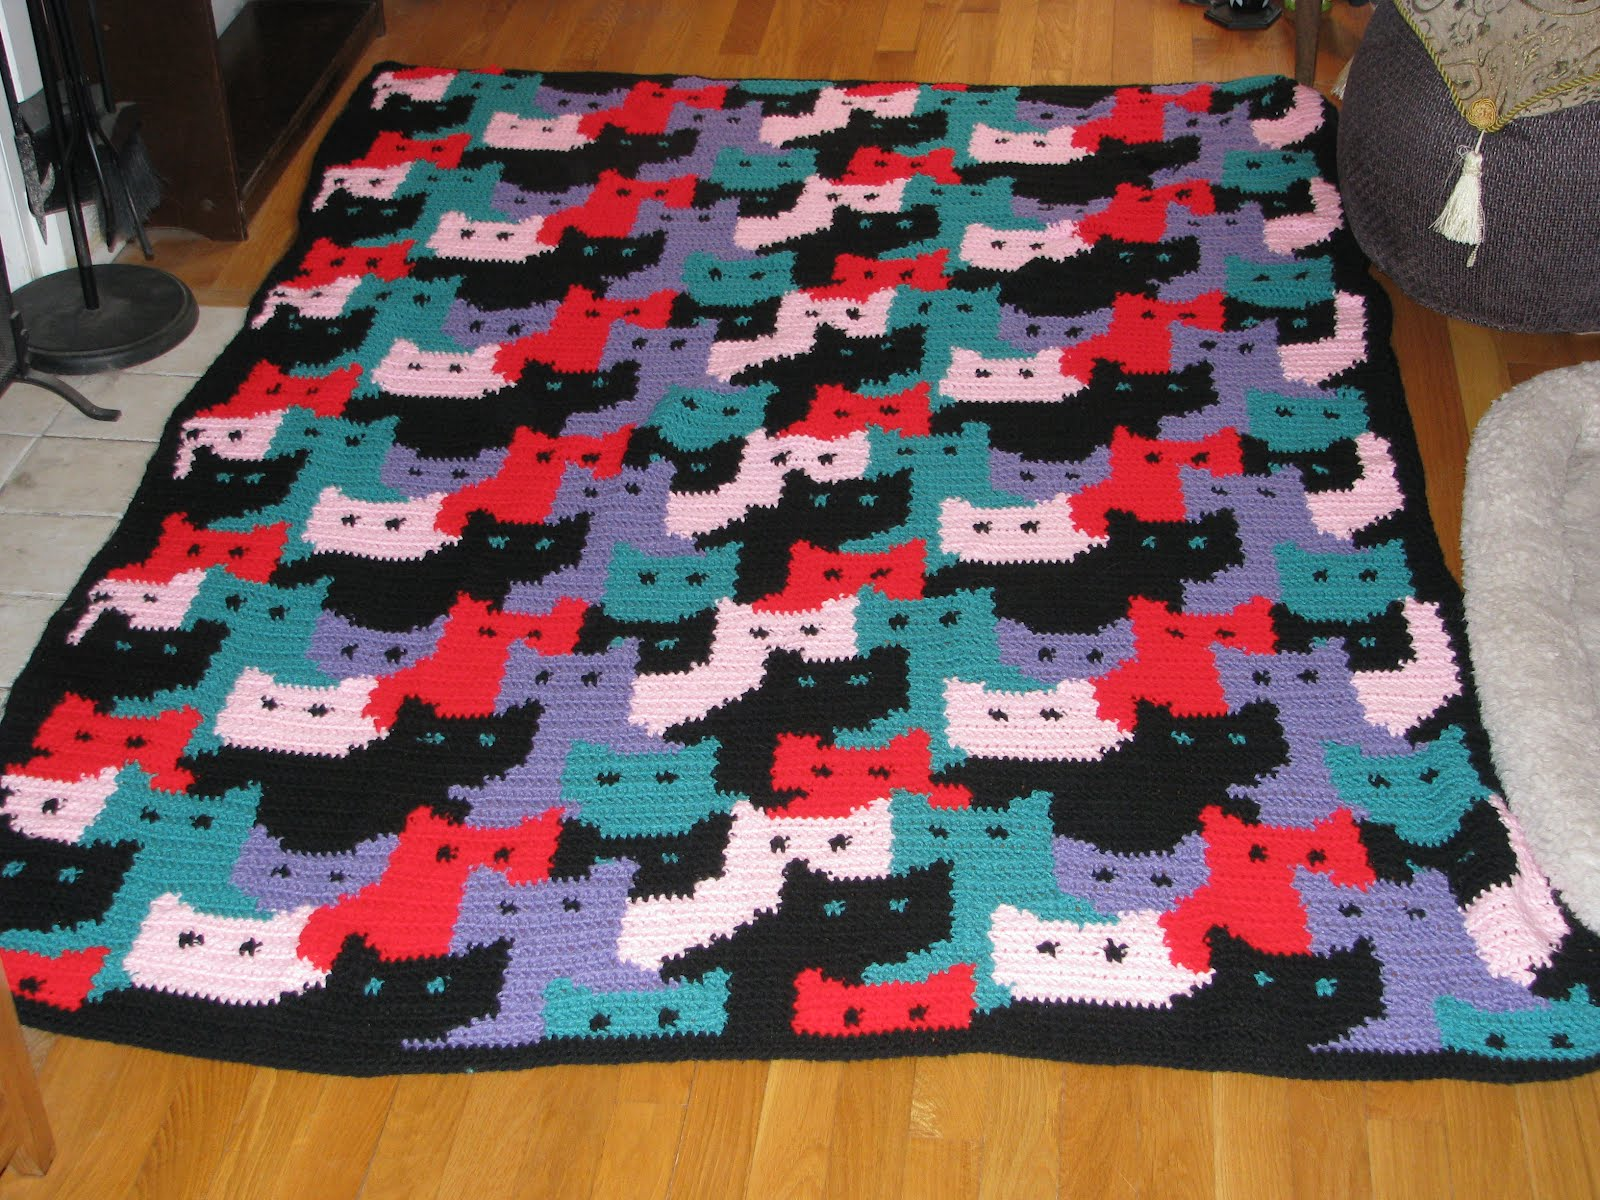 Crochet Cat Afghan Pattern : Craft Attic Resources: April 2012